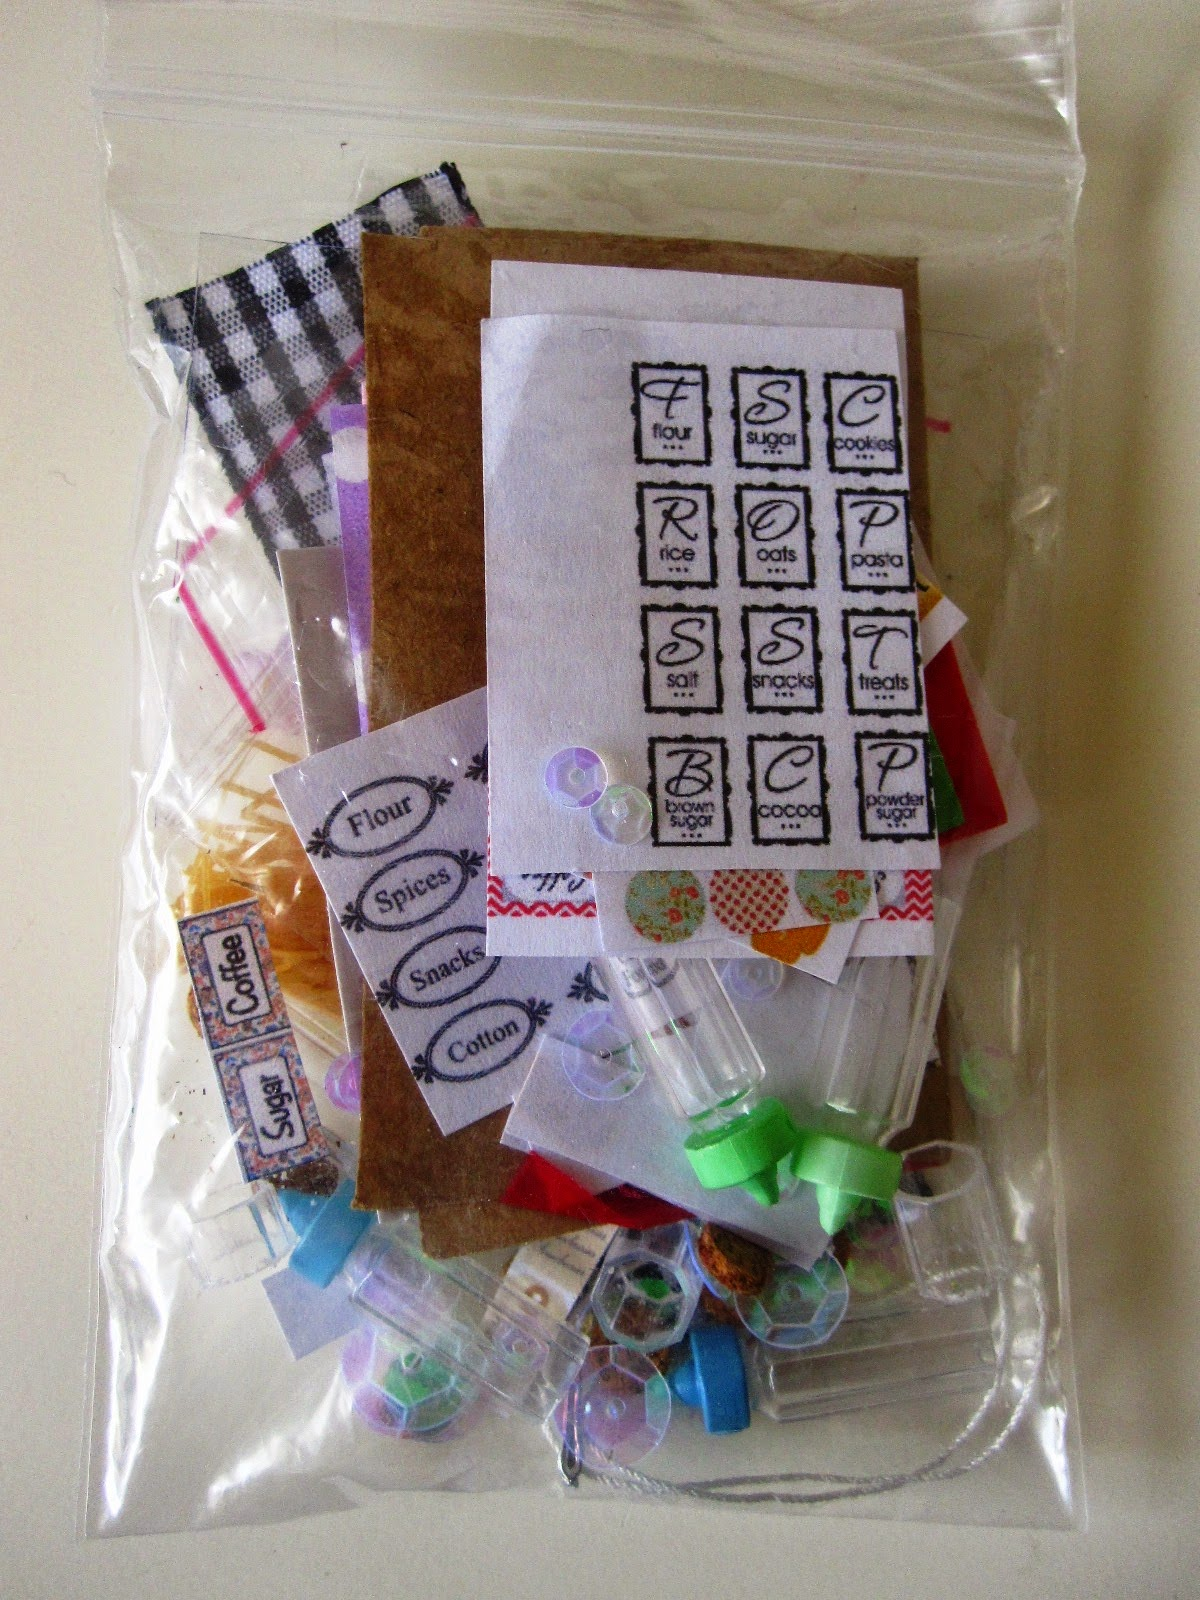 Small ziplock bag filled with tiny dolls' bottles and a selection of printies for making miniature jars.